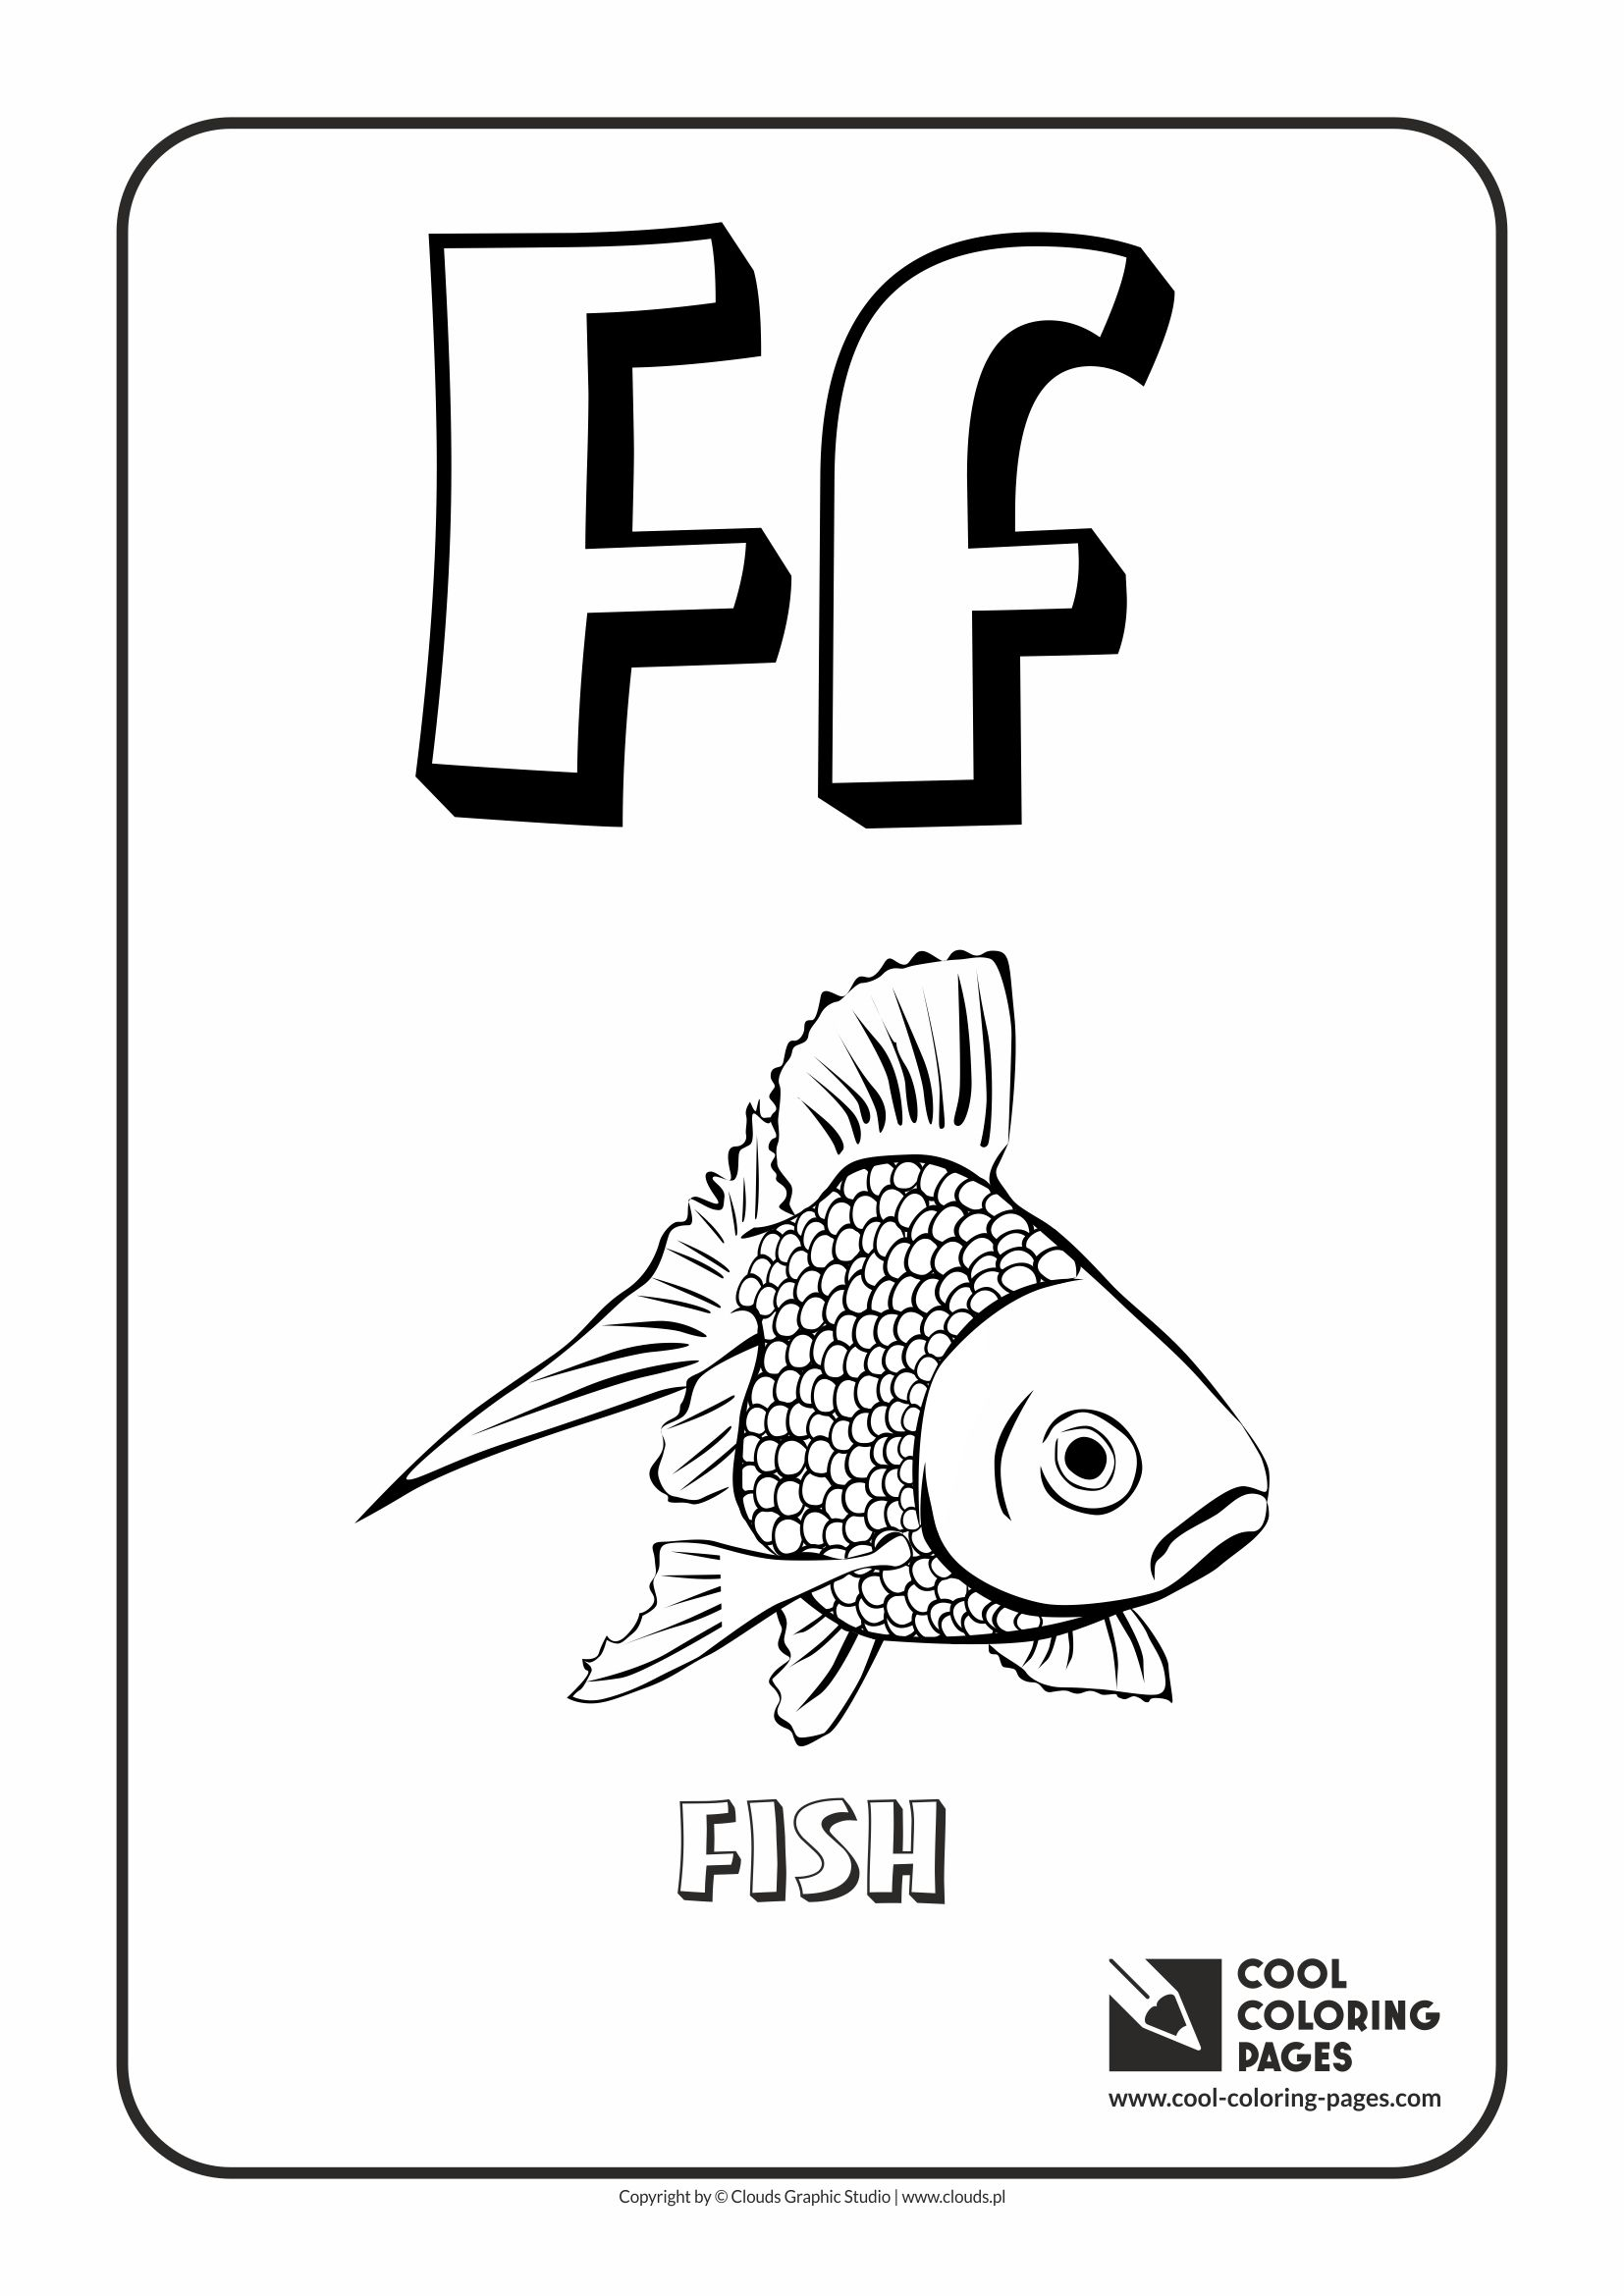 Coloring pages for alphabet - Cool Coloring Pages Alphabet Letter F Coloring Page With Letter F